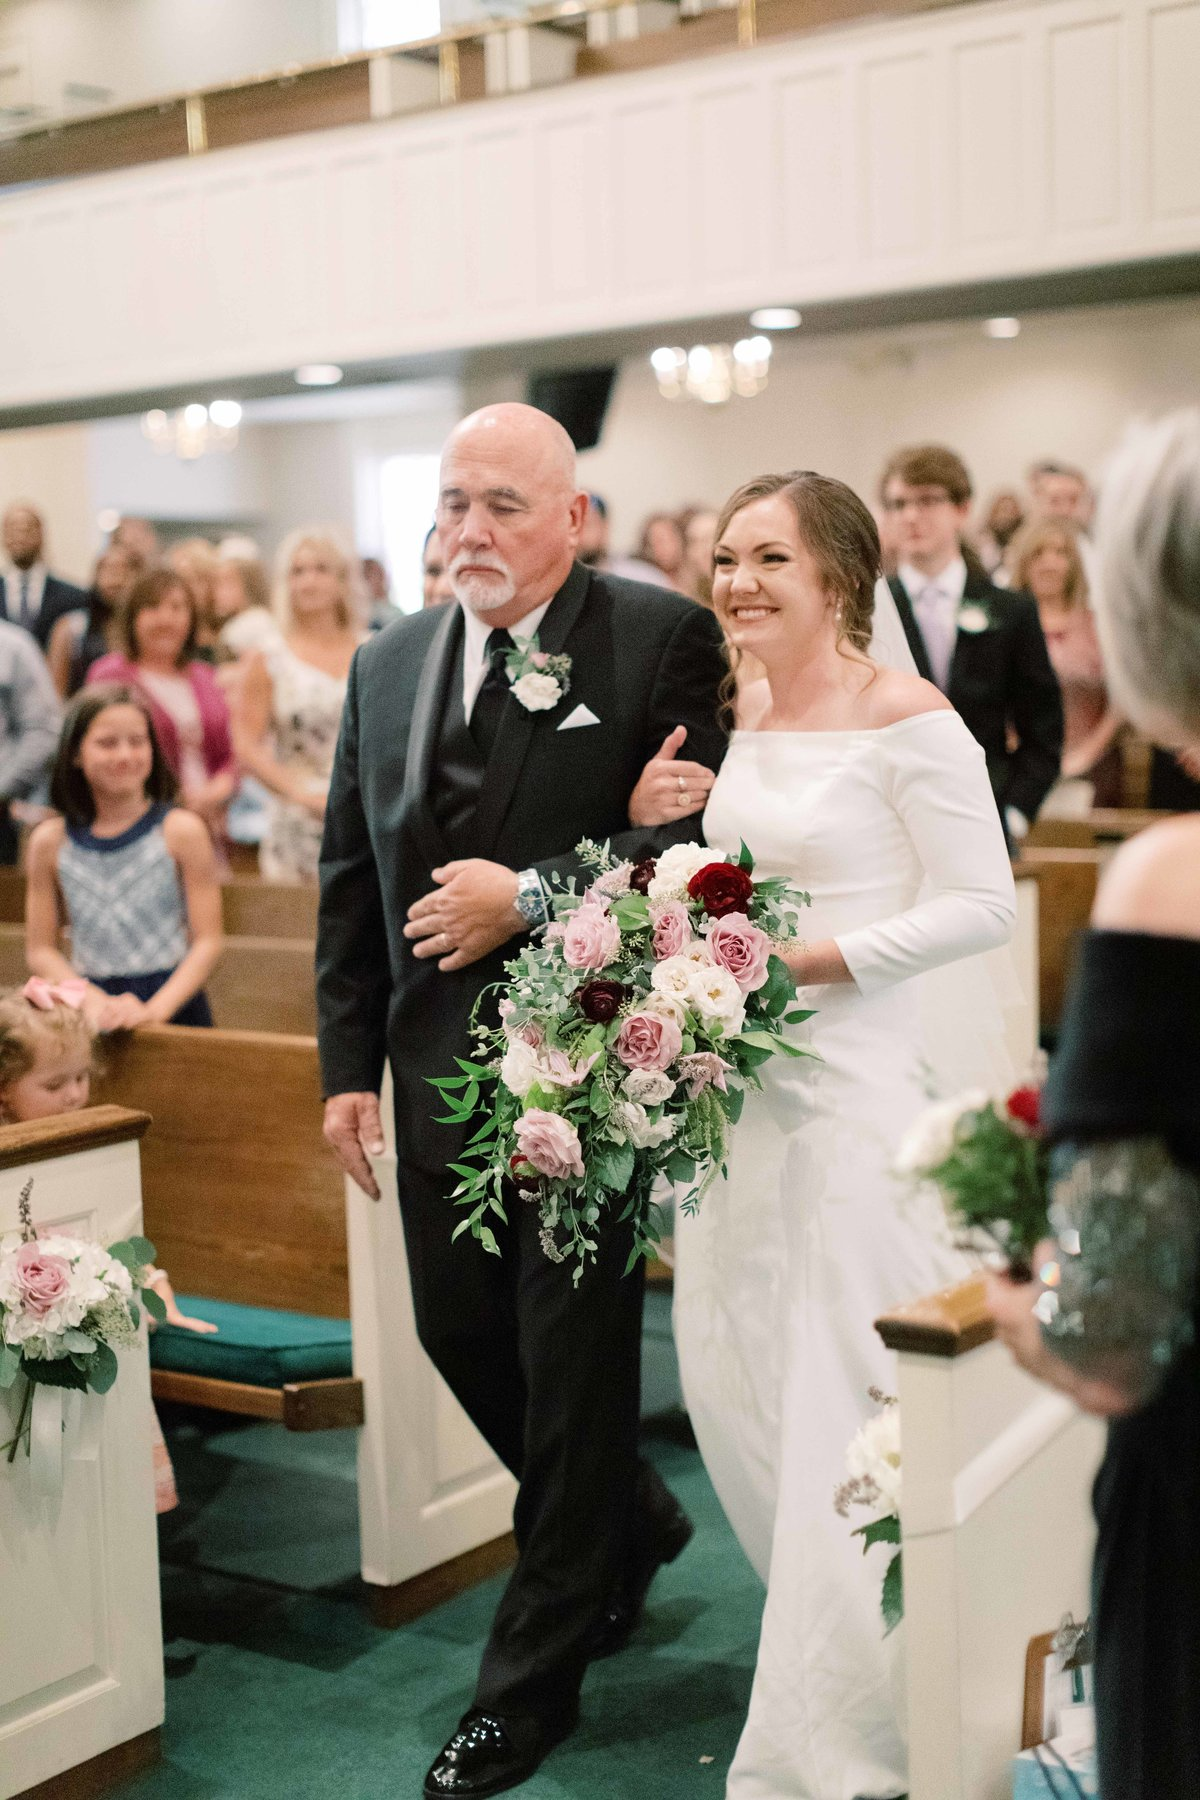 Angel_owens_photography_wedding_oliviarobert120